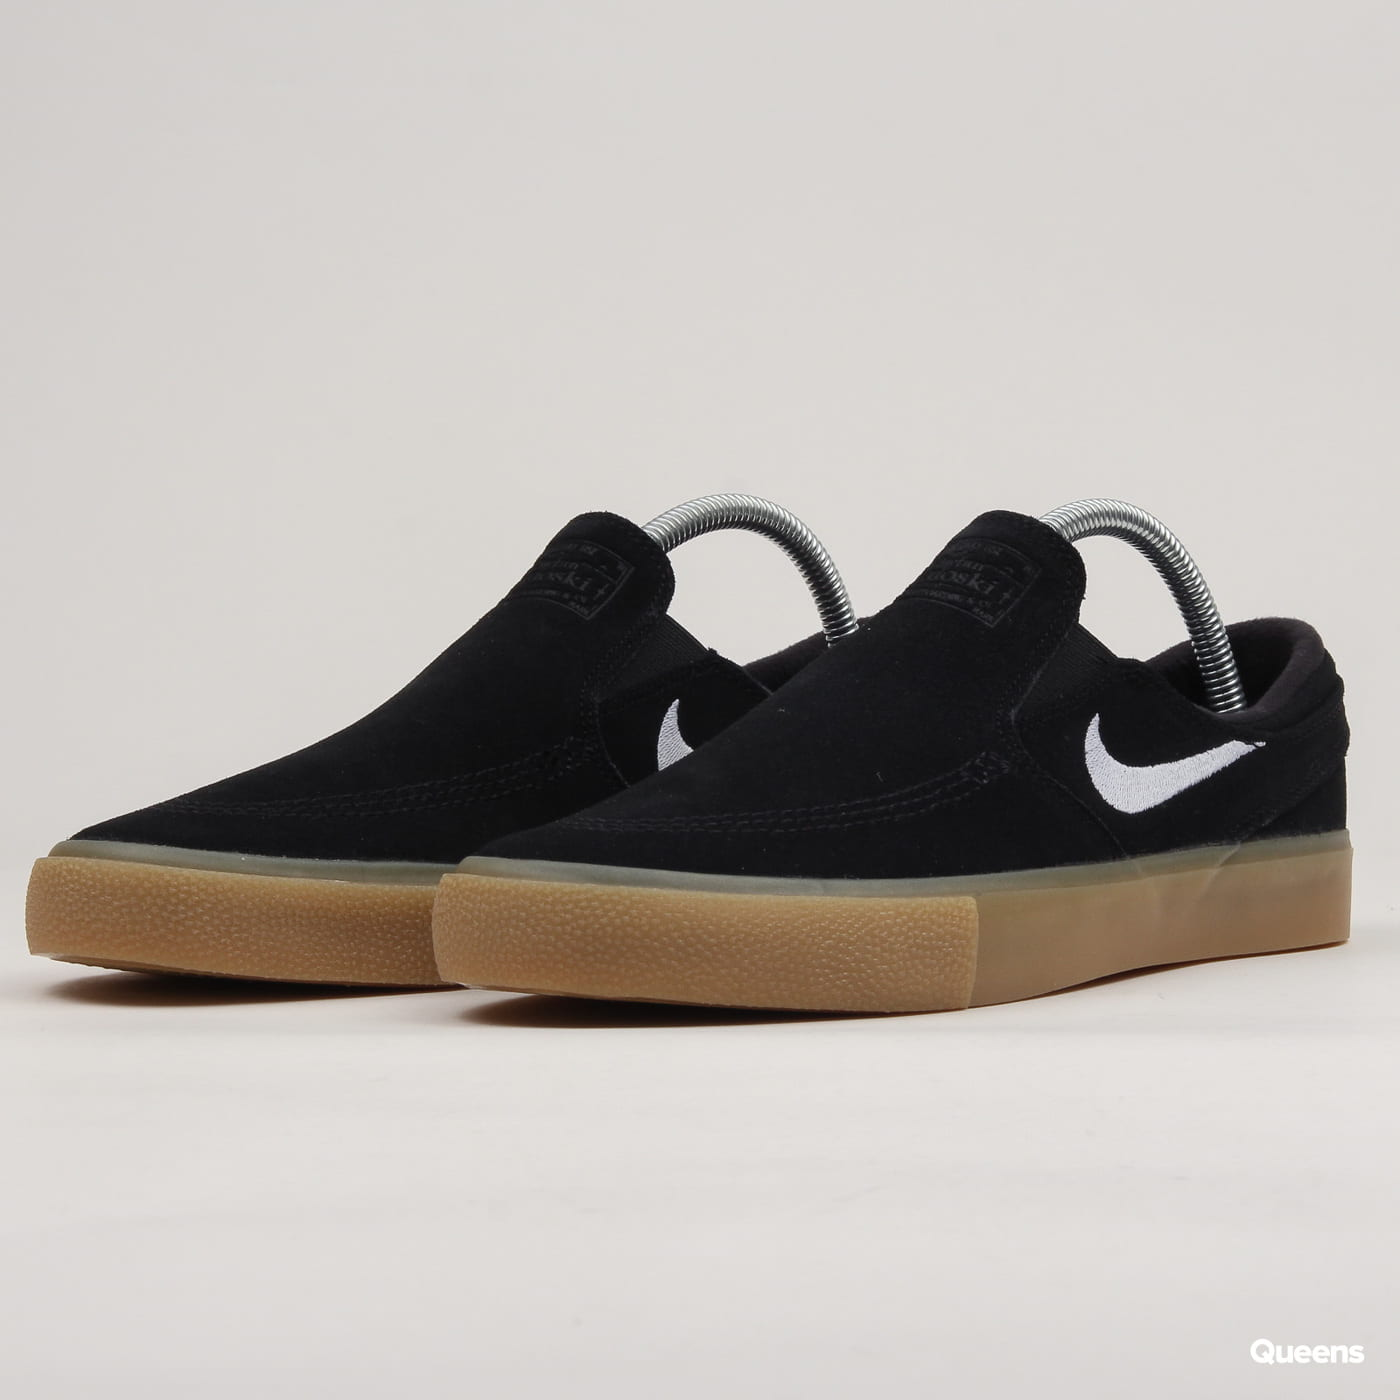 a2ed3ec7f Obuv Nike SB Zoom Janoski Slip RM black / white - black (AT8899-001) –  Queens 💚